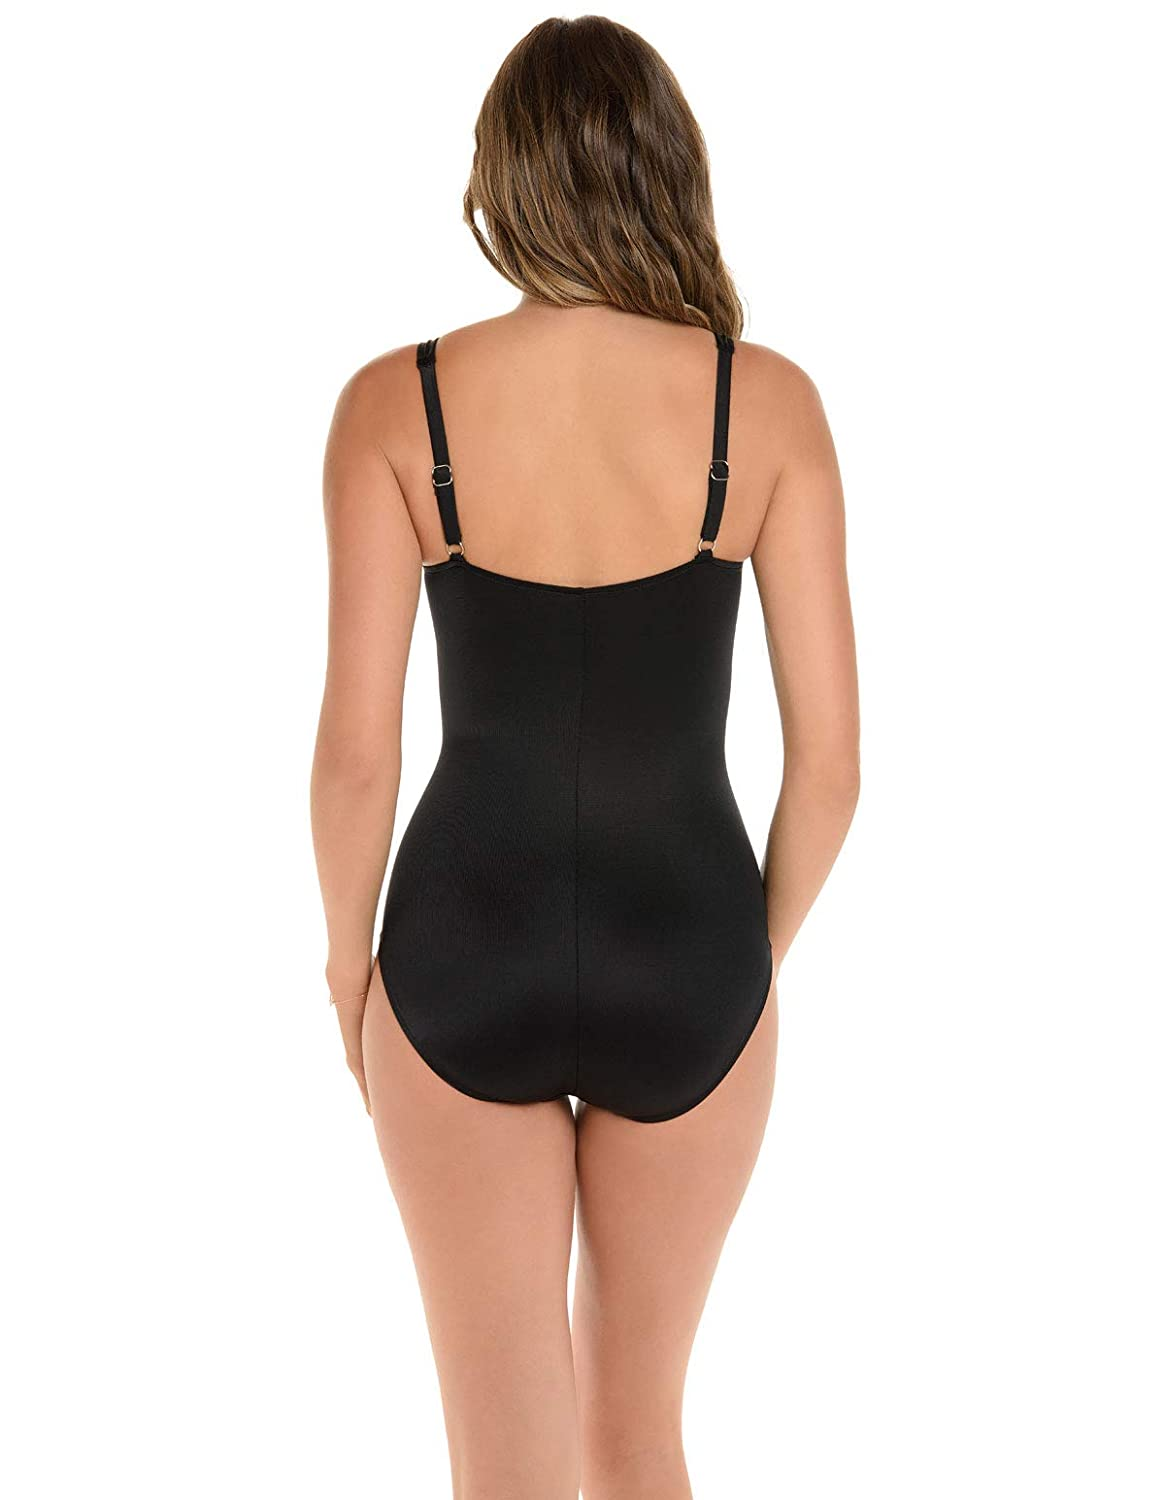 25e9fcb99b6 Miraclesuit Women s Swimwear So Riche Zip Code Sweetheart Neckline with  Zipper Tummy Control One Piece Swimsuit at Amazon Women s Clothing store